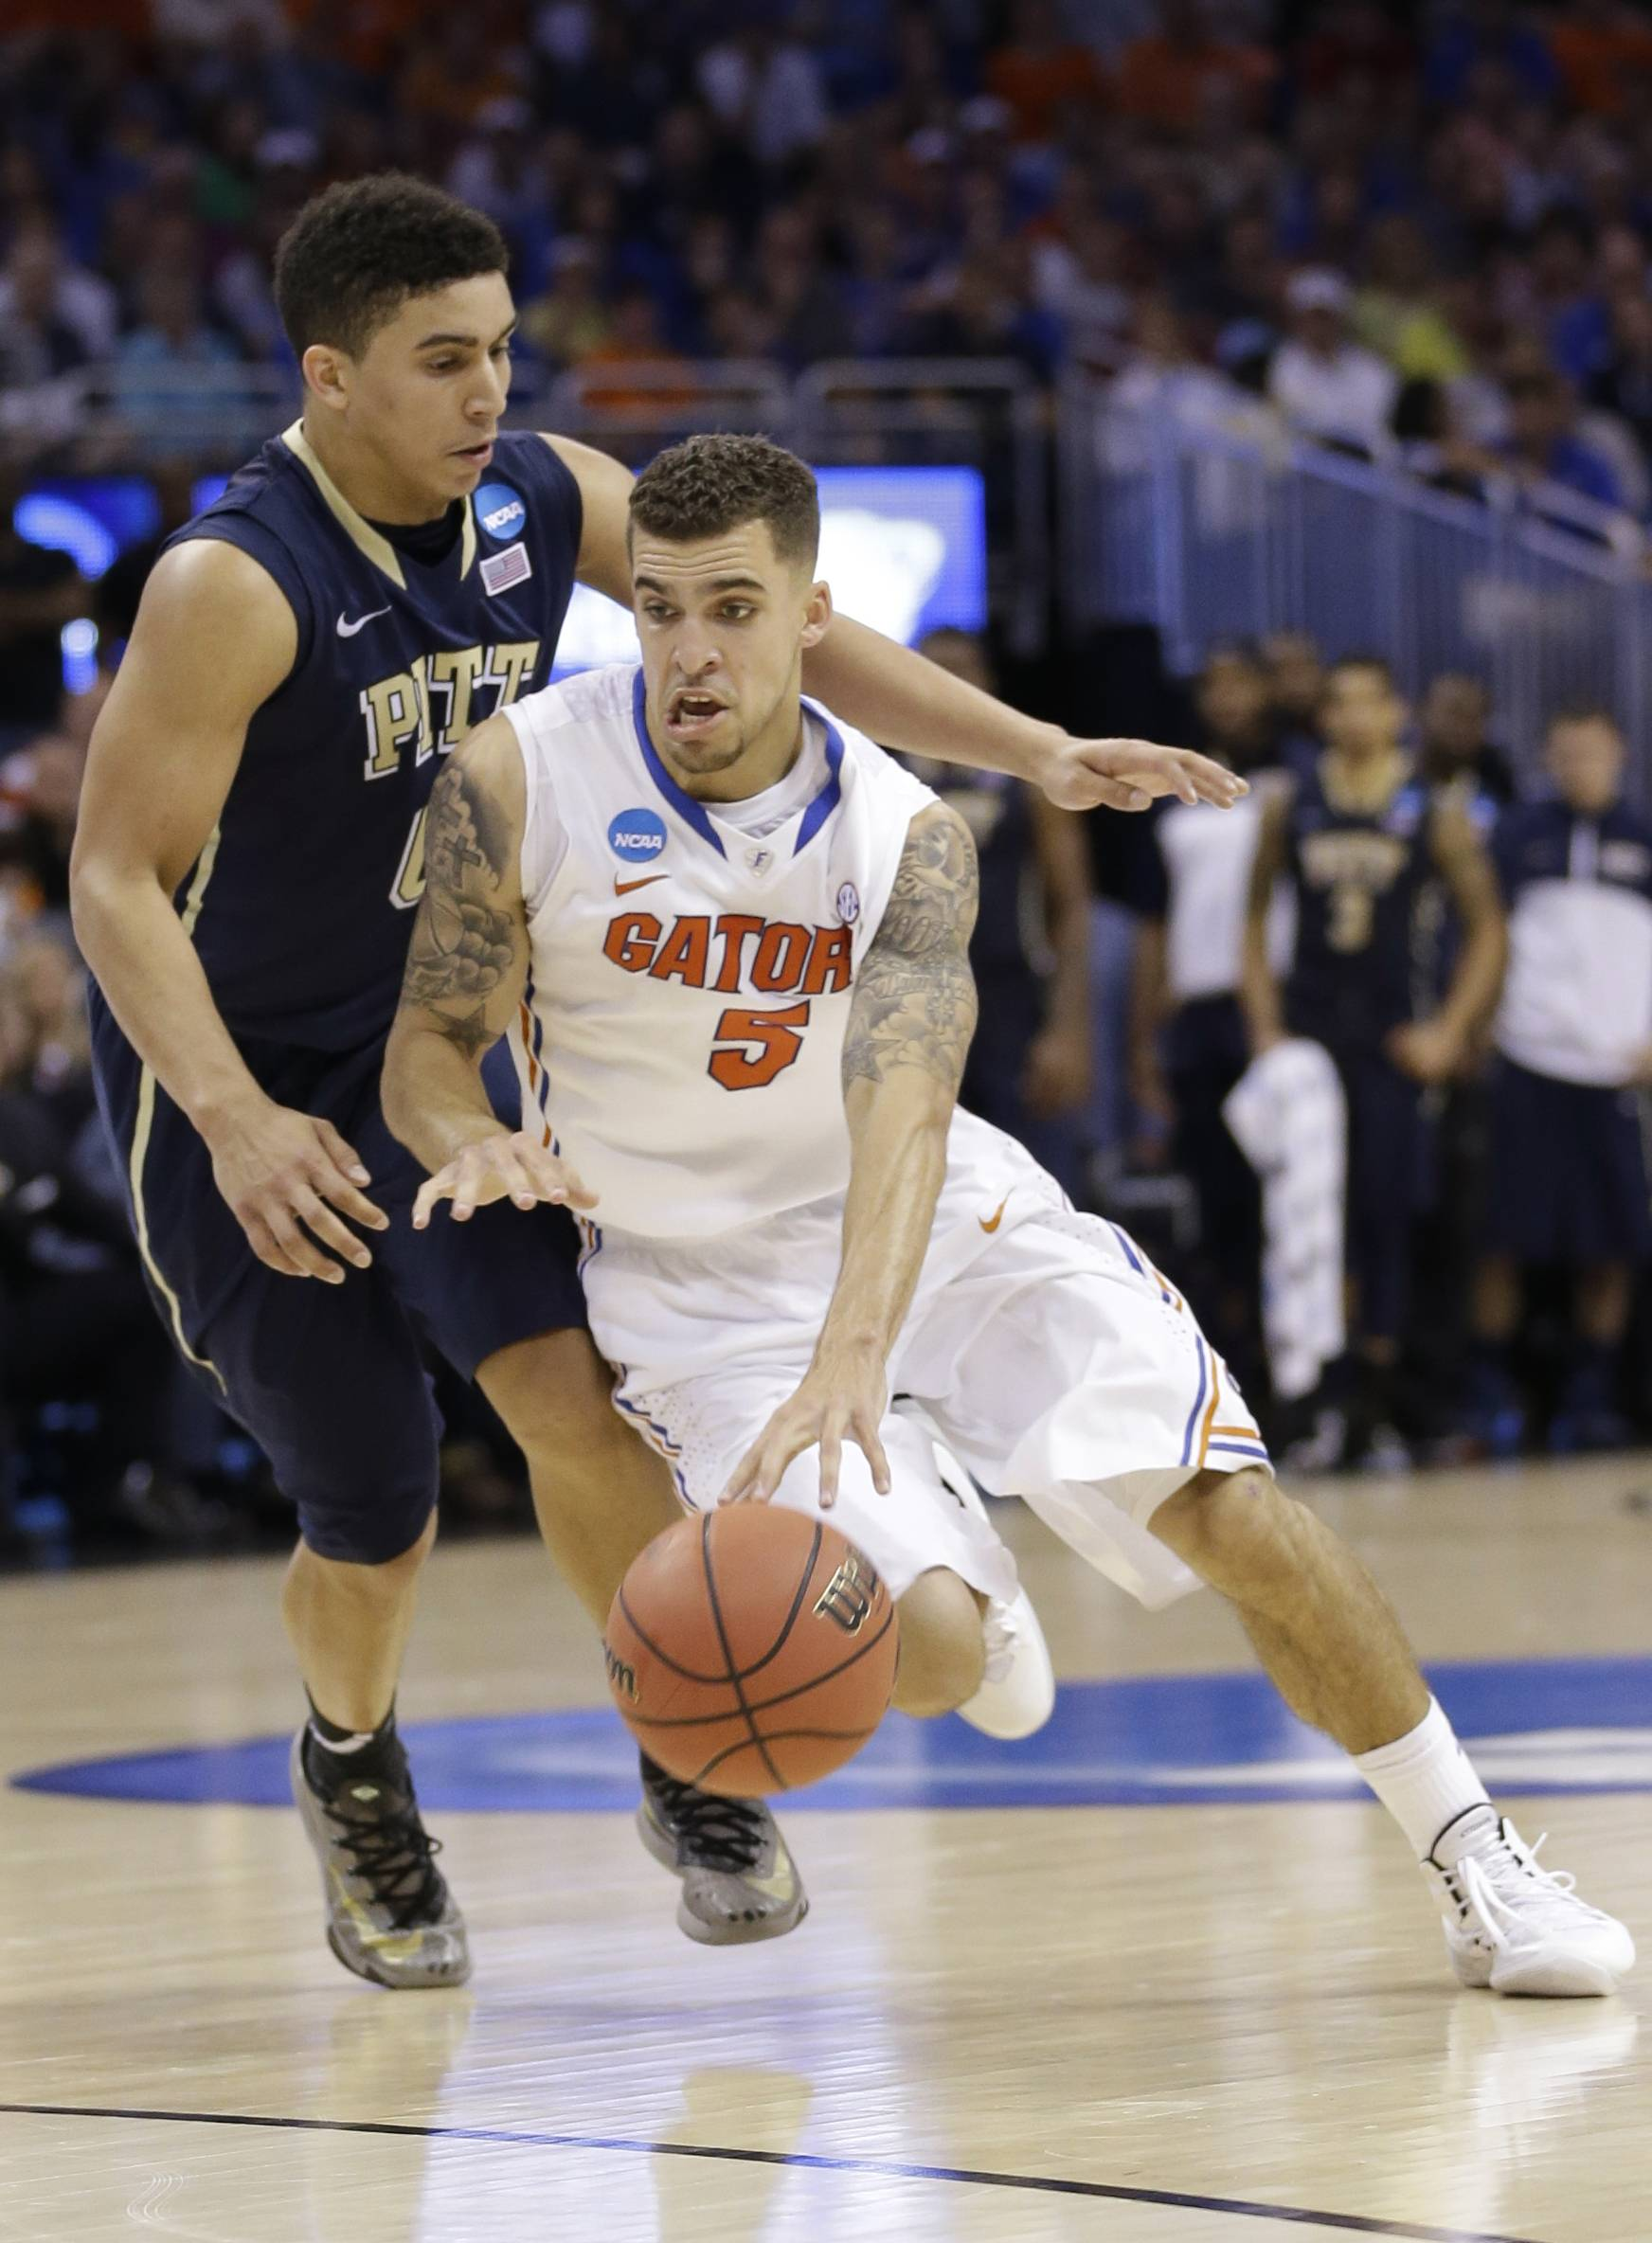 Florida guard Scottie Wilbekin (5) dribbles around Pittsburgh guard James Robinson (0) during a third-round game in the NCAA college basketball tournament Saturday in Orlando, Fla. Florida defeated Pittsburgh 61-45.